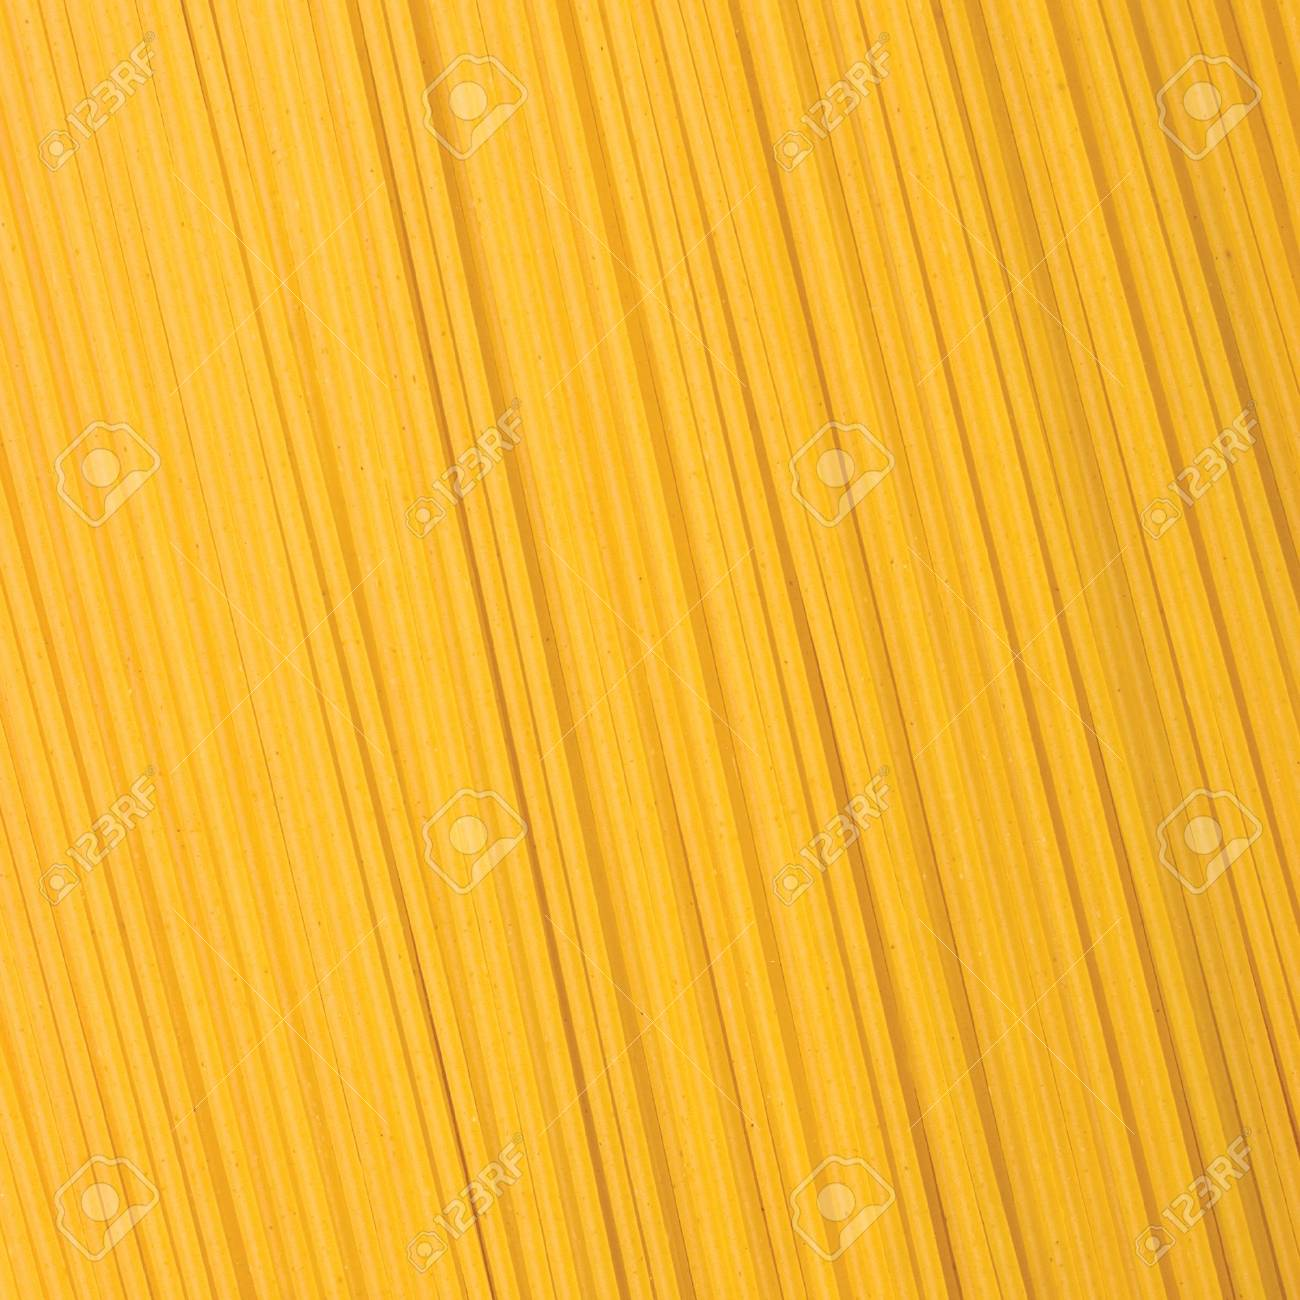 Traditional spaghetti pasta closeup background, large and detailed Stock Photo - 6552231